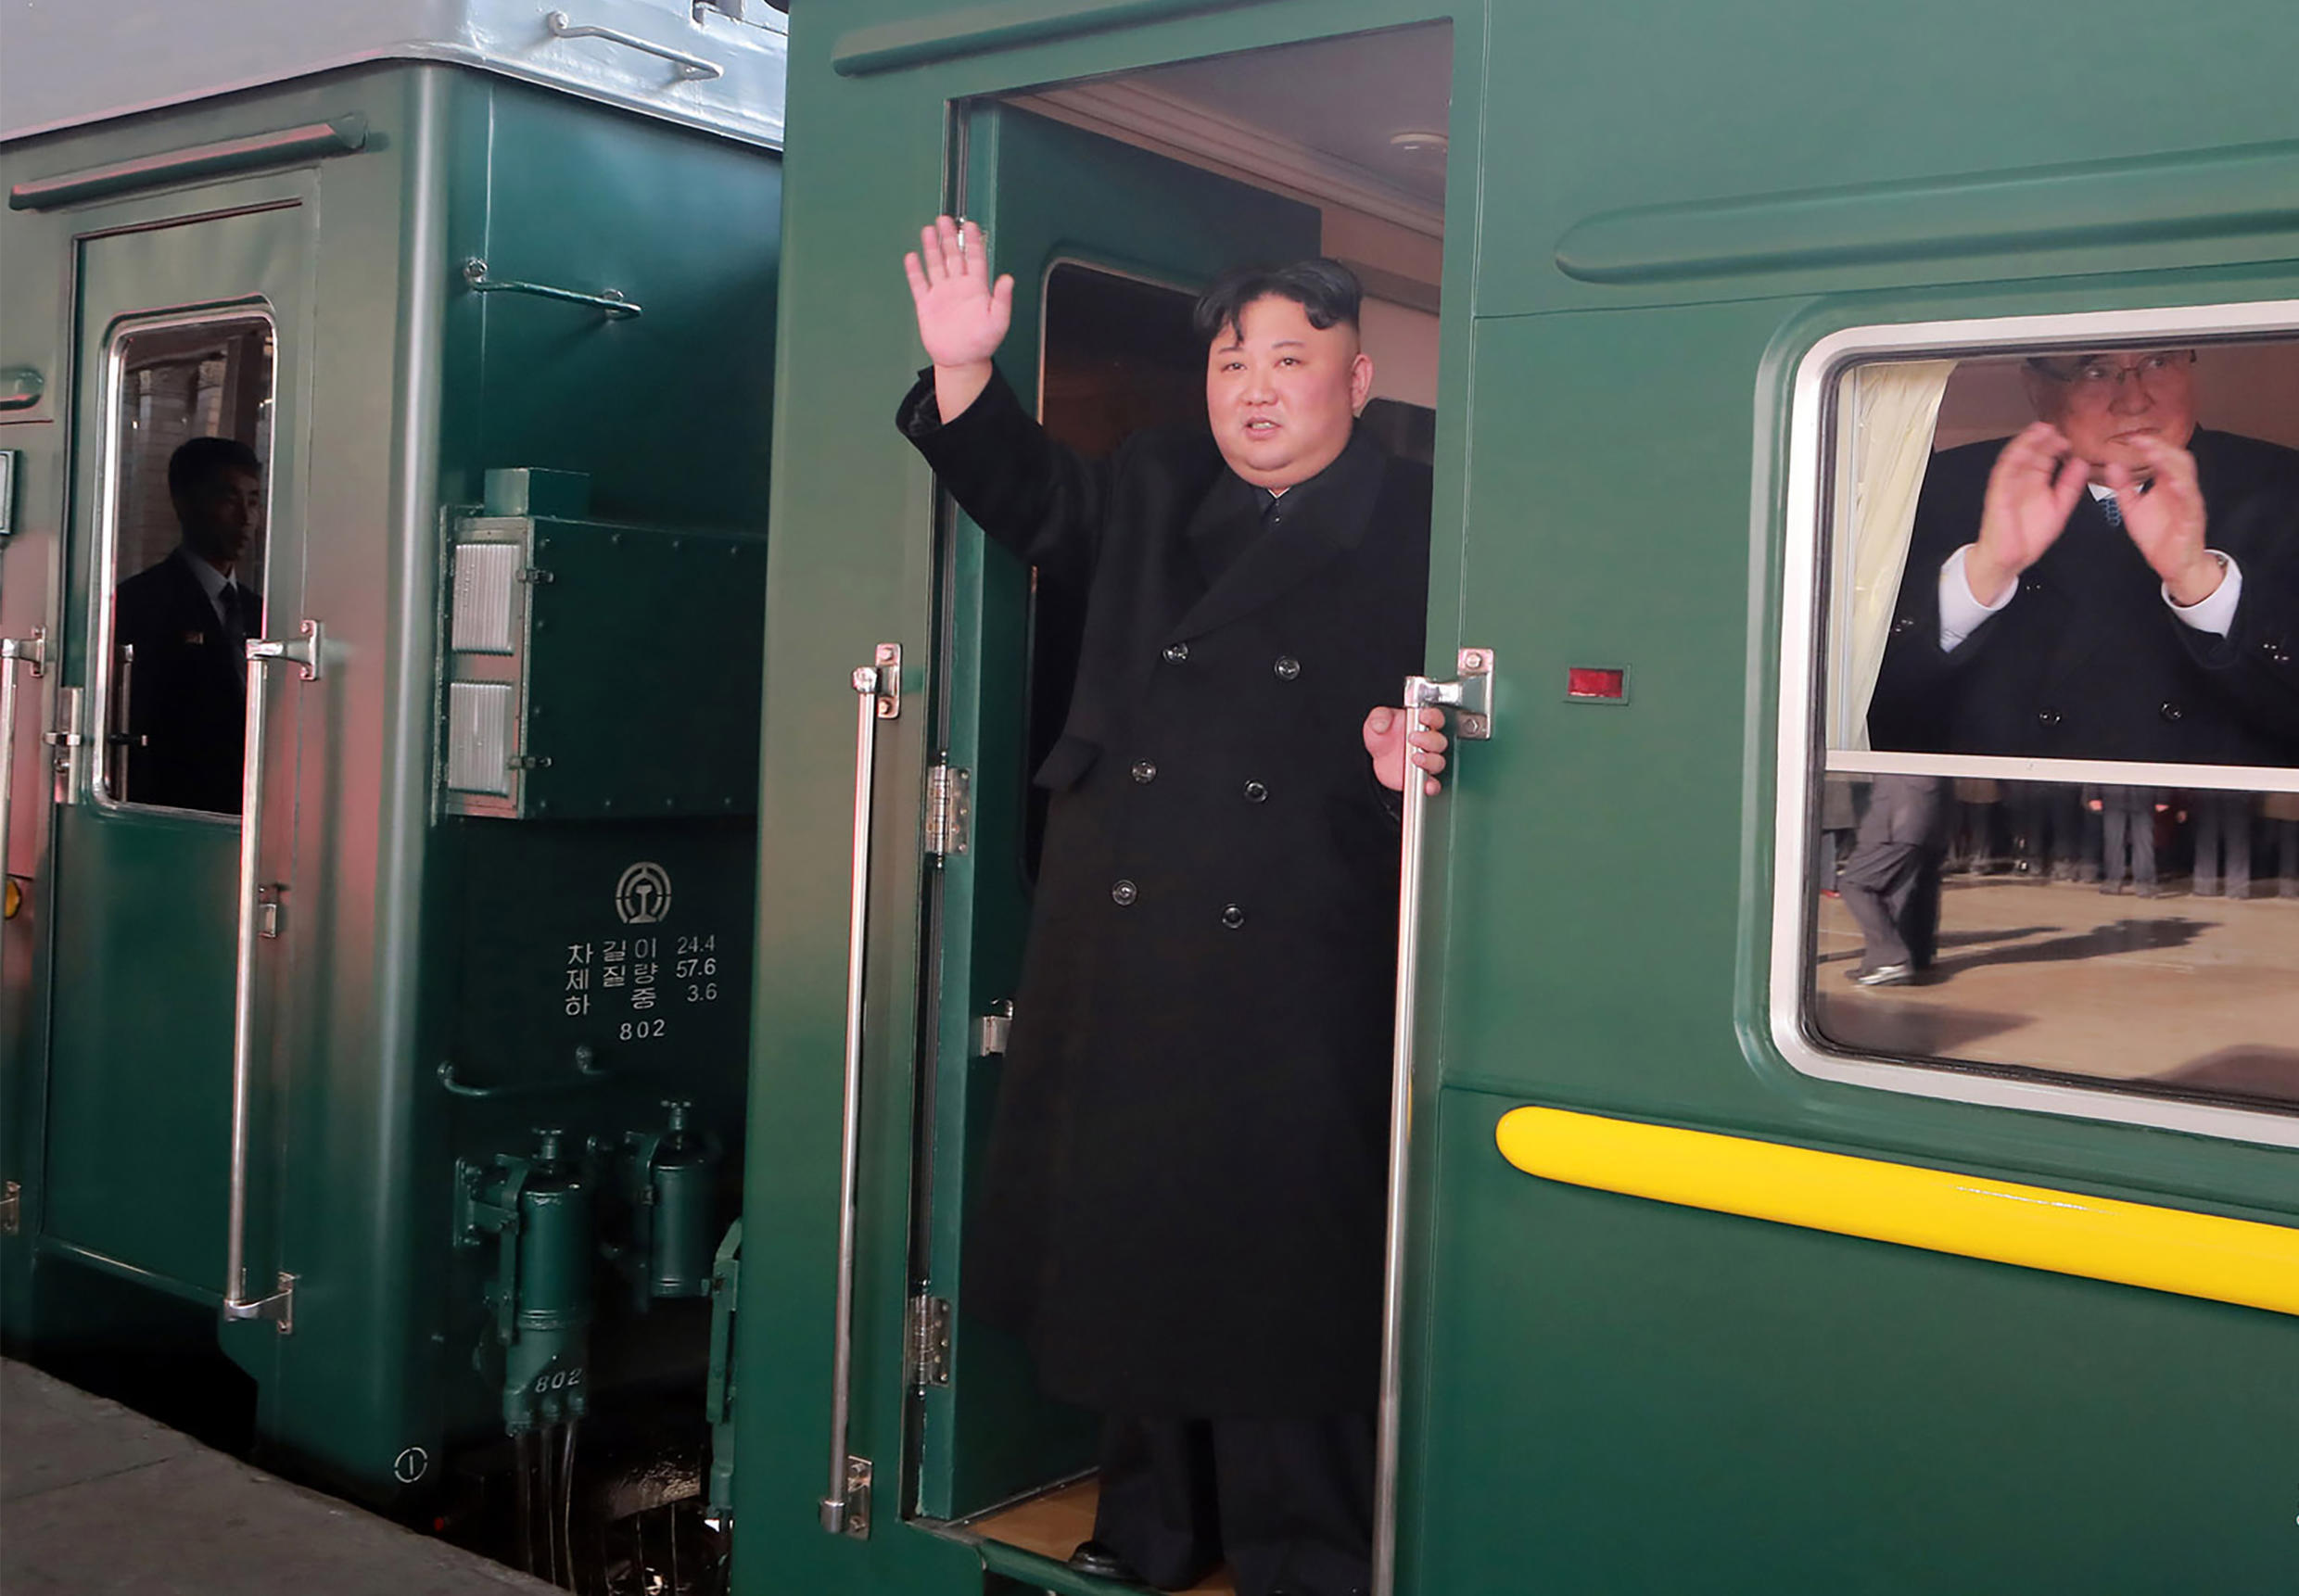 Kim departing Pyongyang Station for the second North Korea-US summit meeting in Hanoi, Vietnam, 23 February 2019.